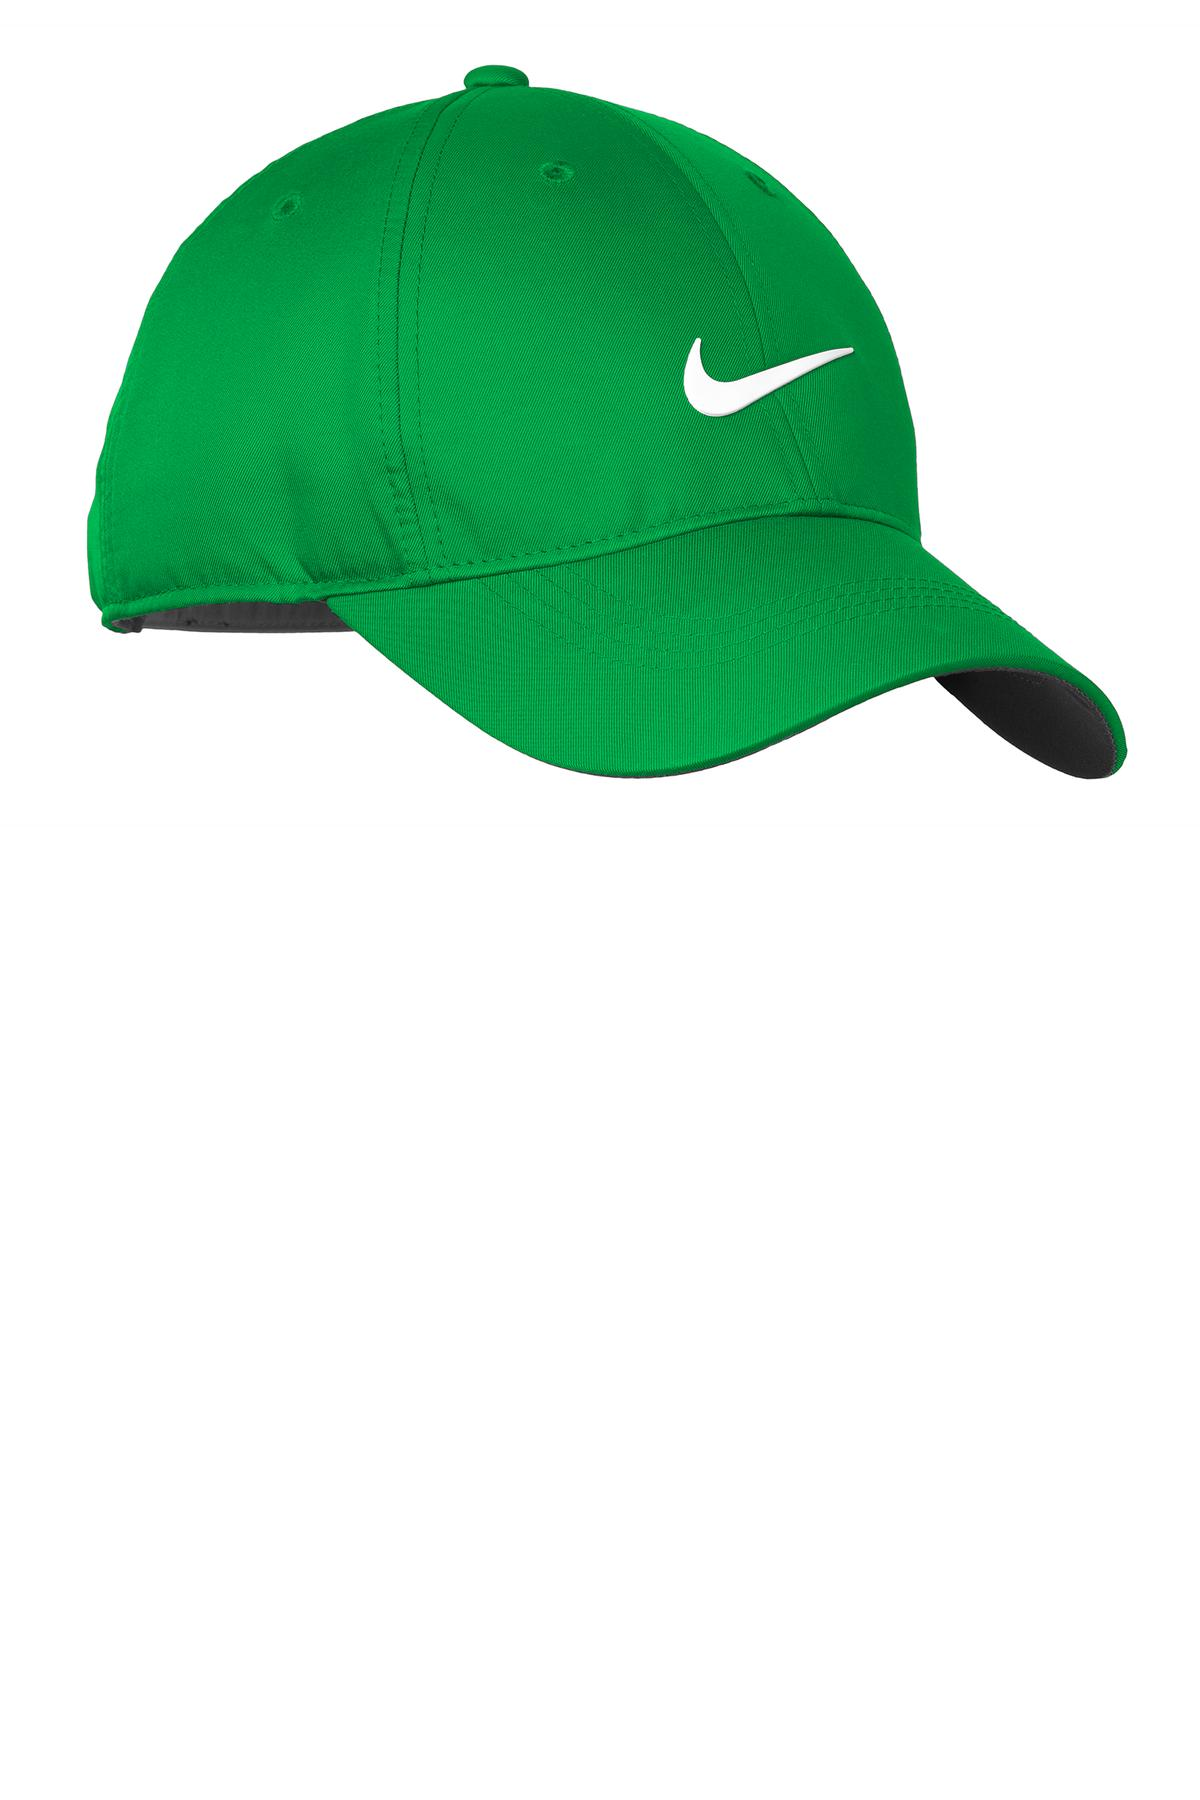 Nike Dri-FIT Swoosh Front Cap. 548533 - Lucky Green/ White